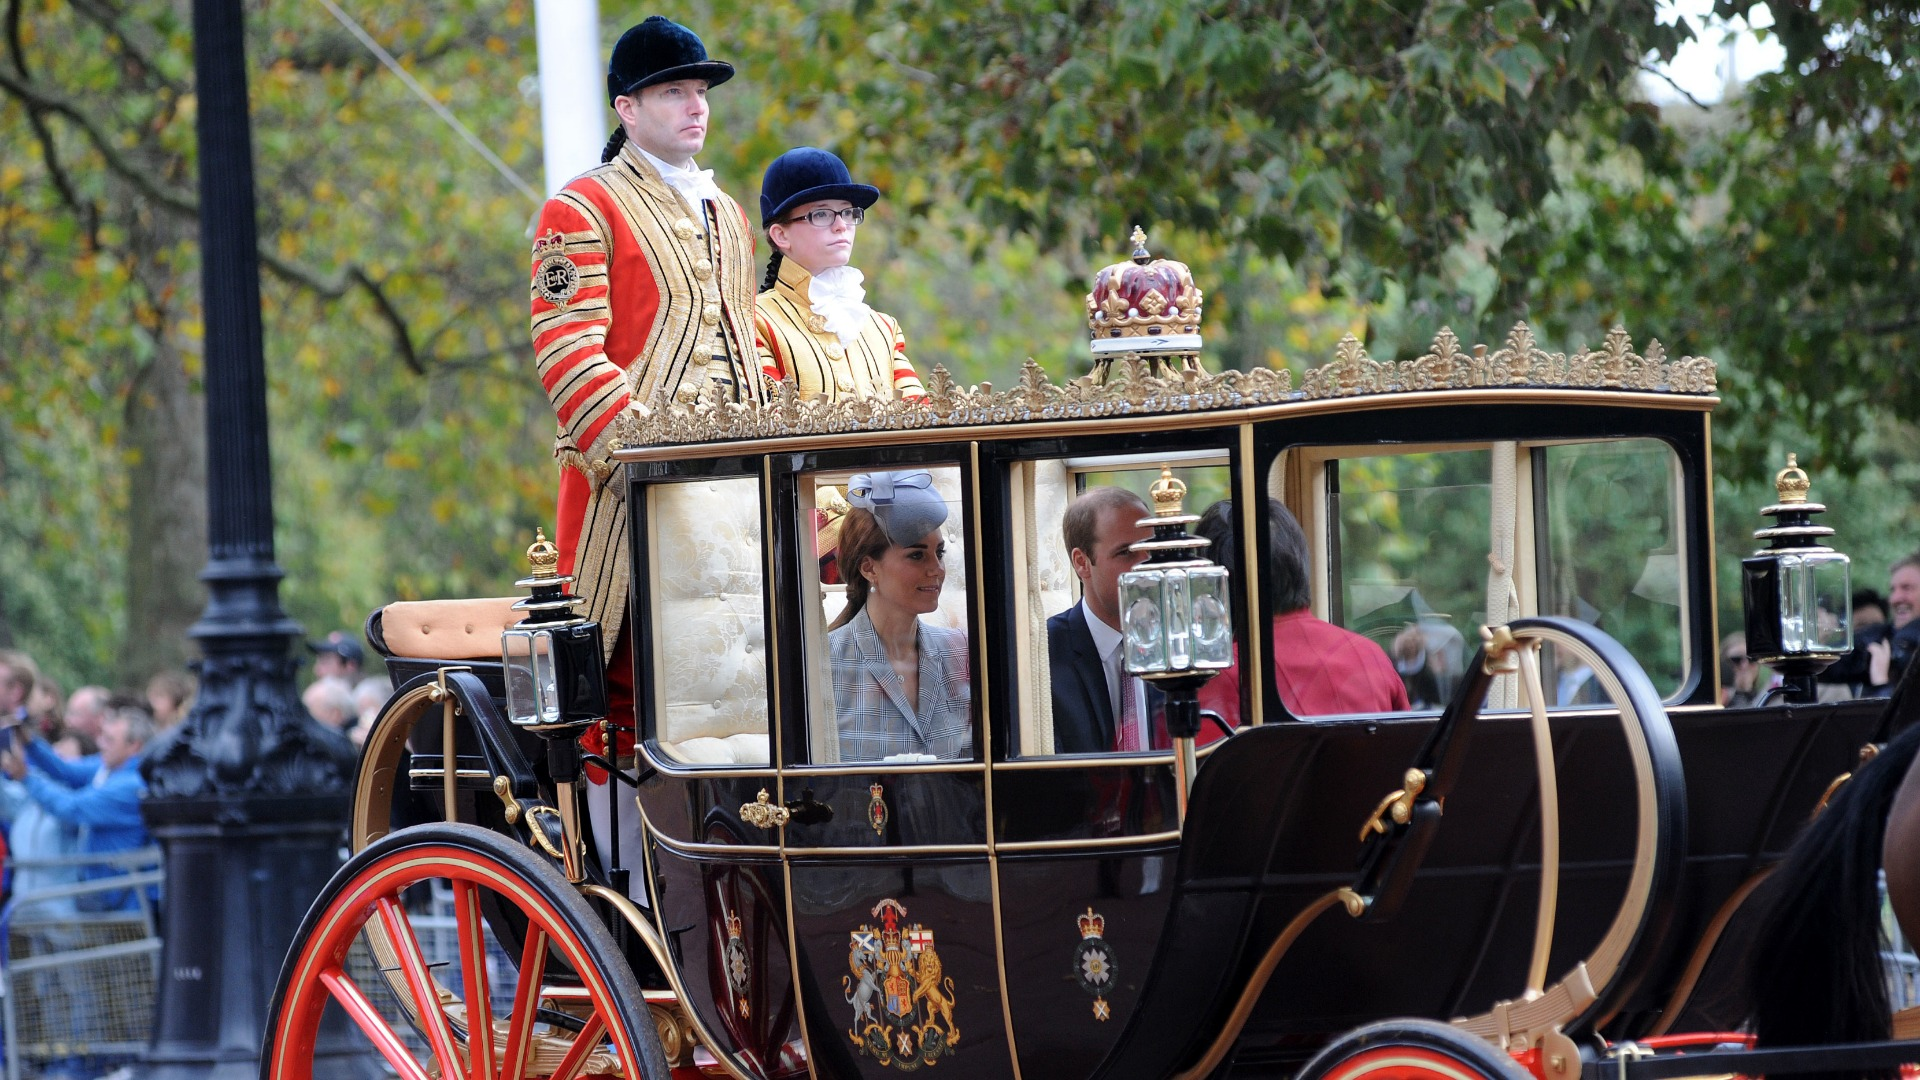 Kate Middleton travels in beautiful royal carriage on official duty